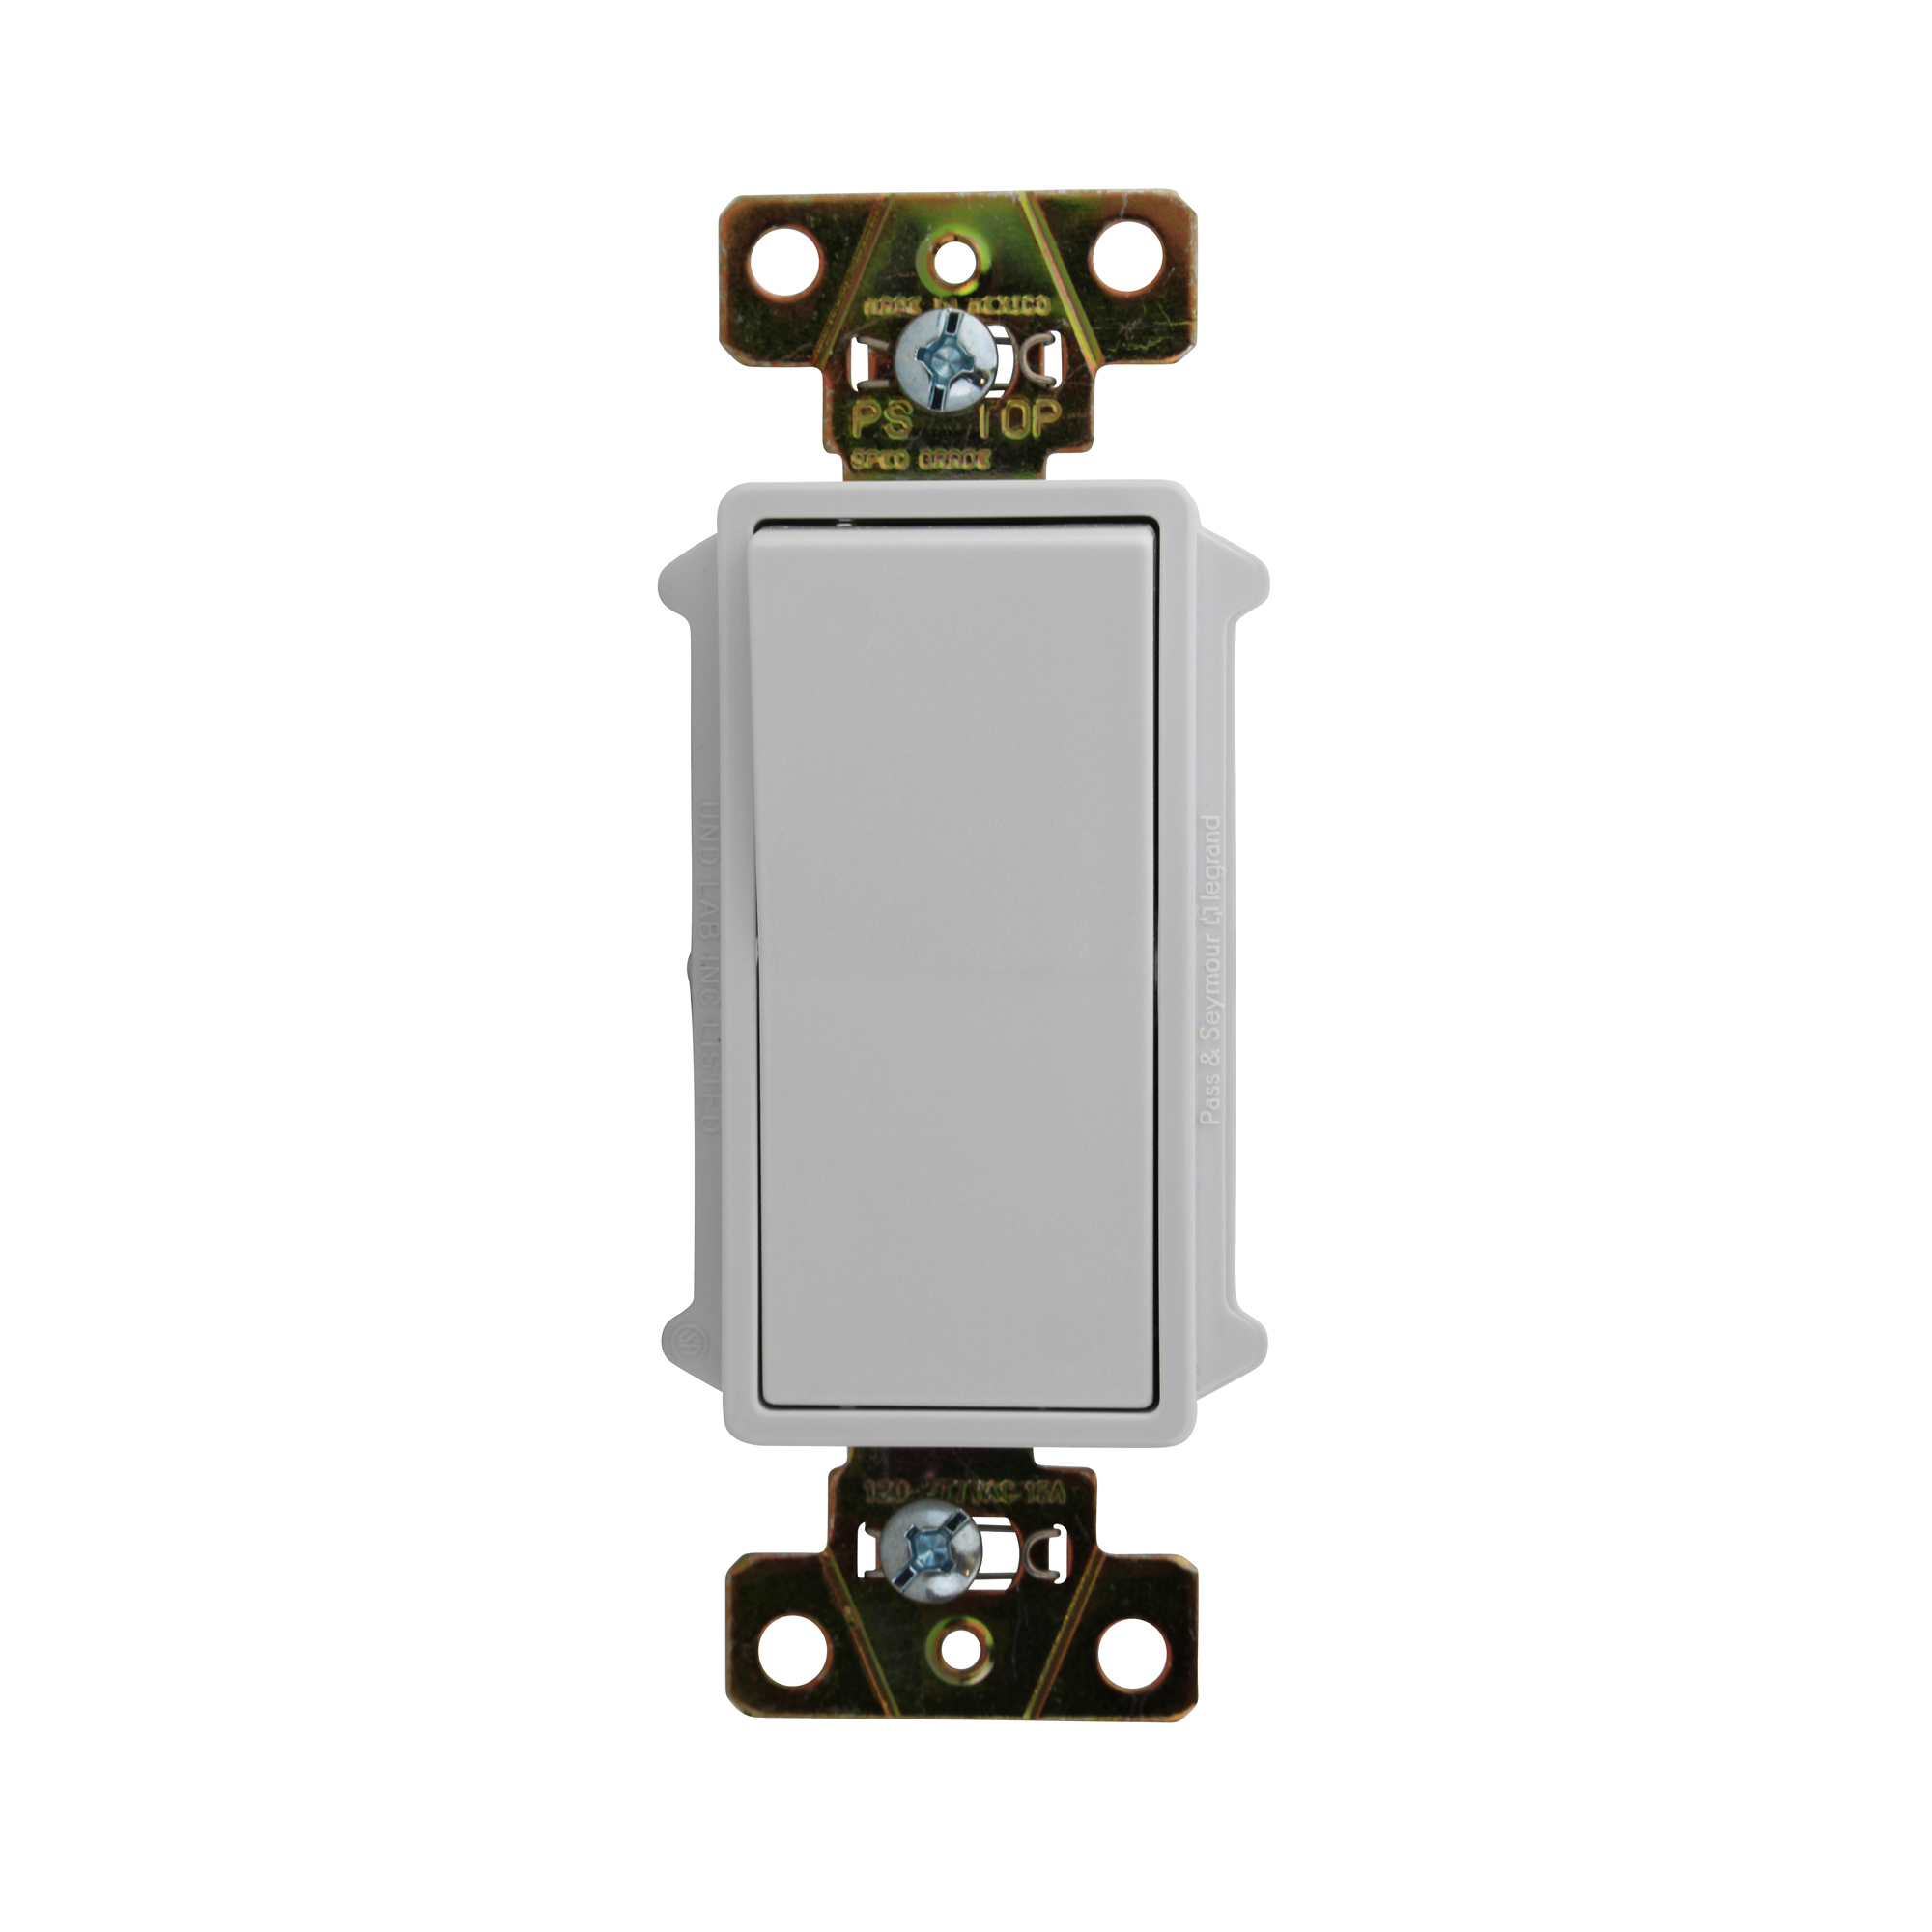 Legrand TradeMaster 15A120V Decorator Switch Four Way in White